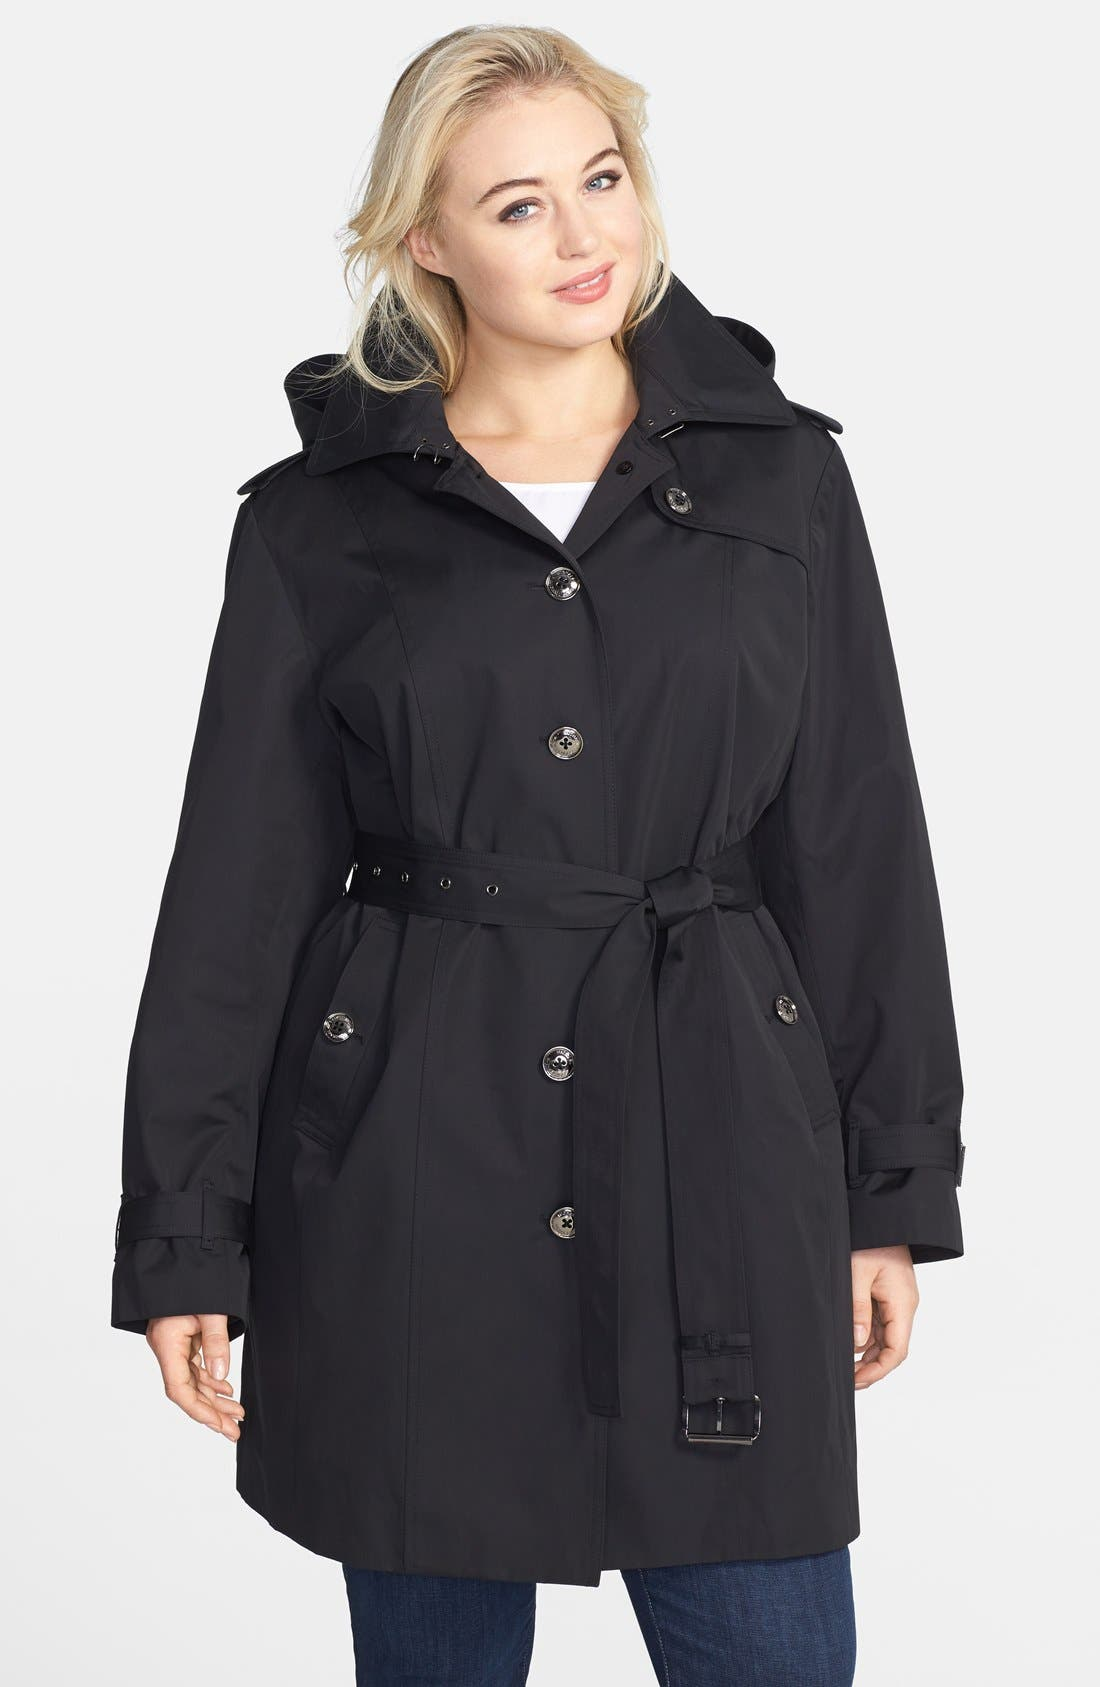 Alternate Image 1 Selected - MICHAEL Michael Kors Trench Coat with Detachable Hood & Liner (Plus Size) (Online Only)